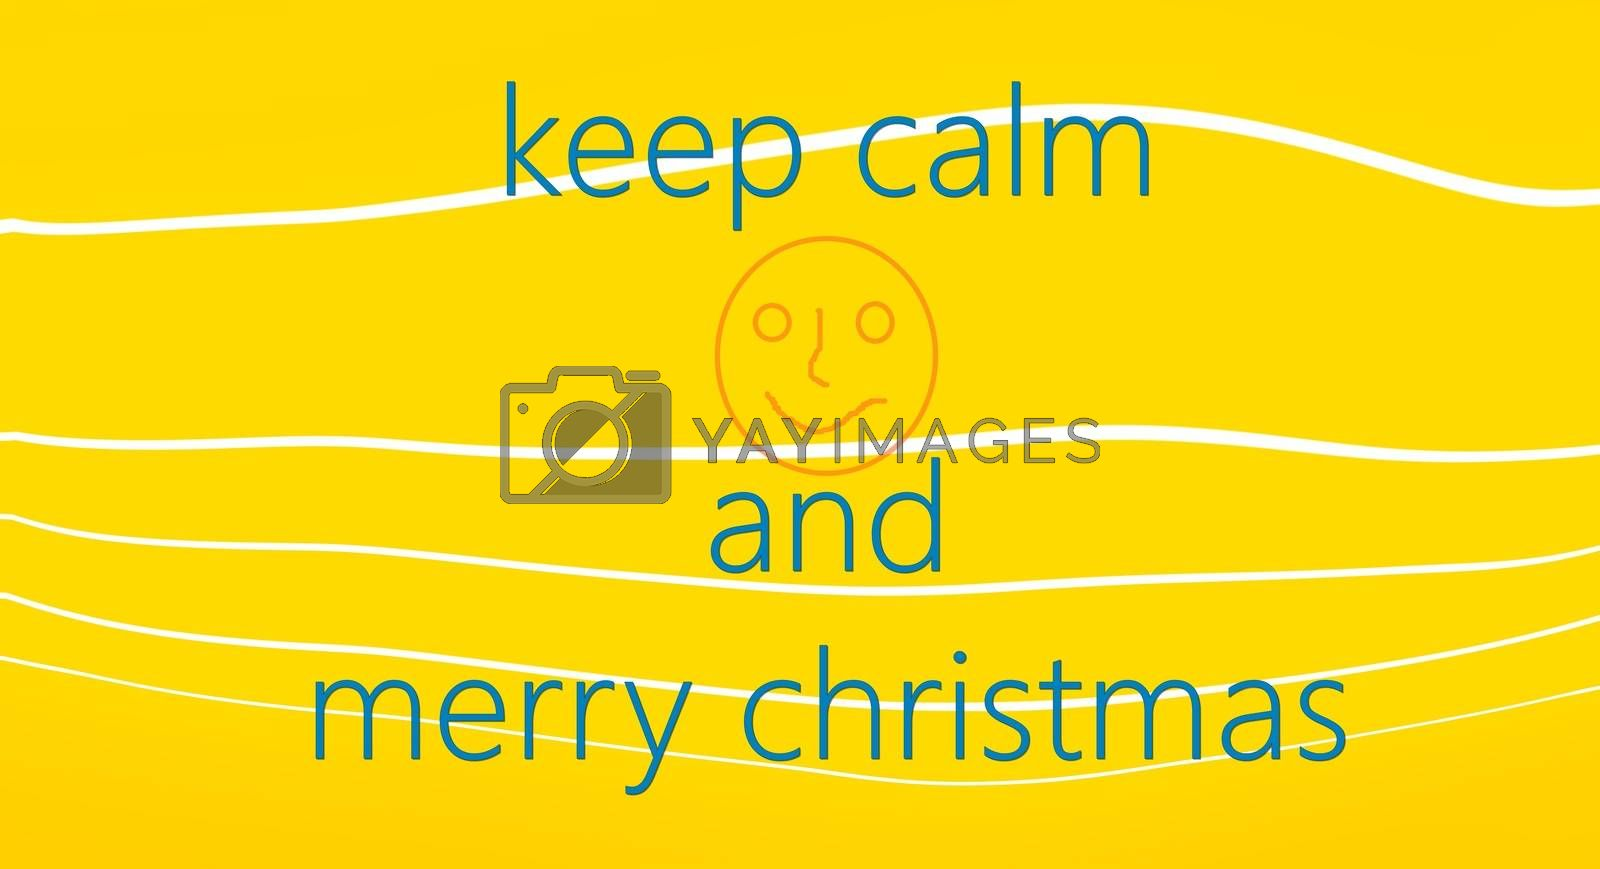 picture of a Keer calm concept. Merry Christmas card on yellow background with white lines